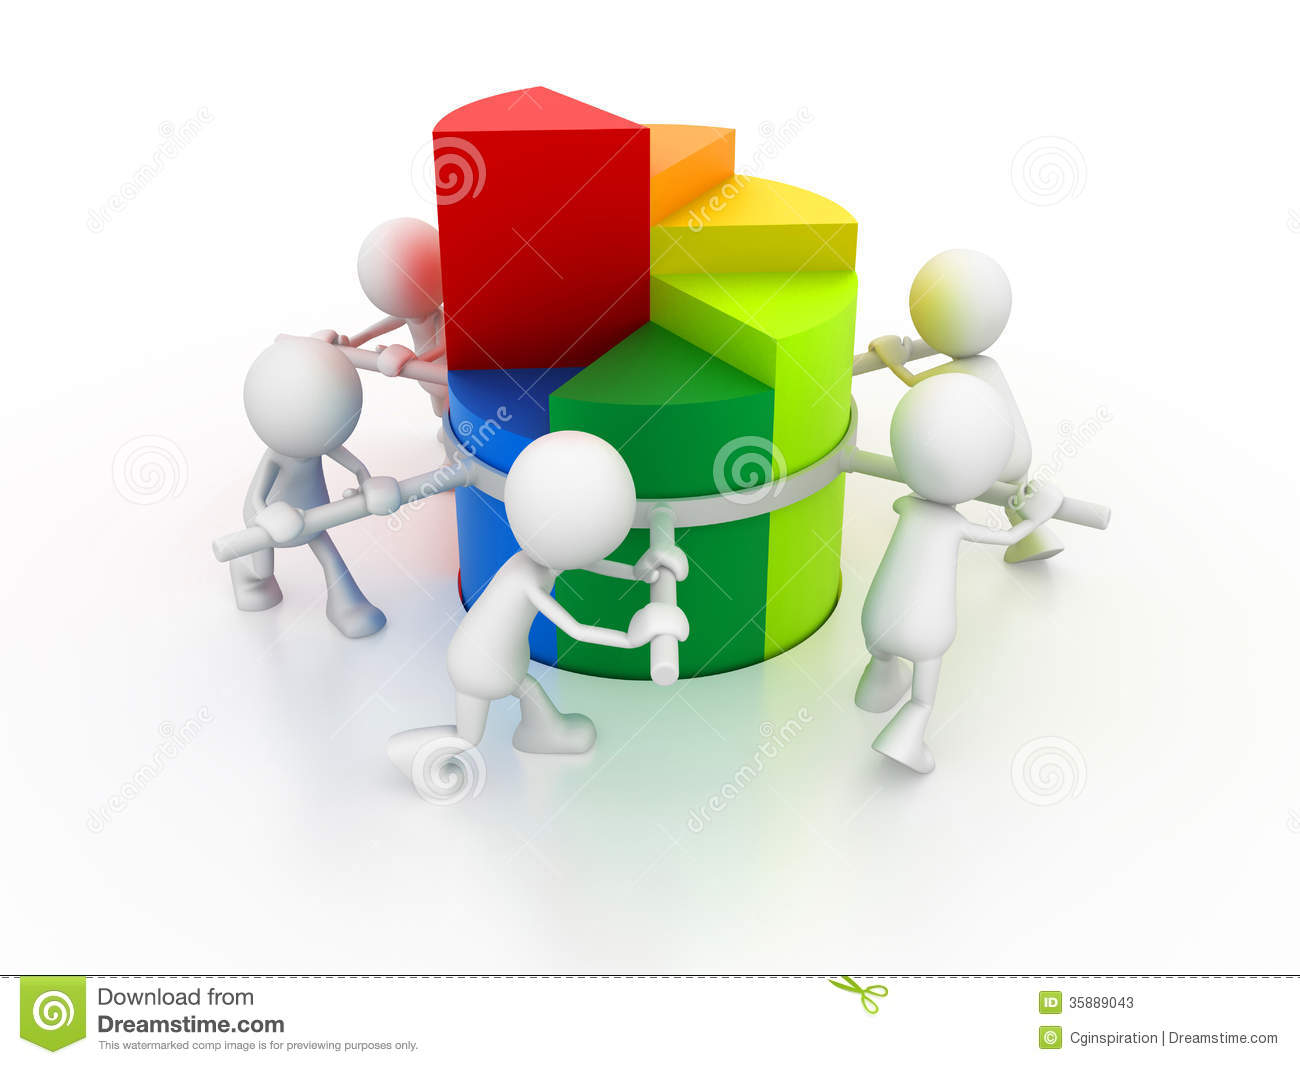 Teamwork Stock Photos - Image: 35889043